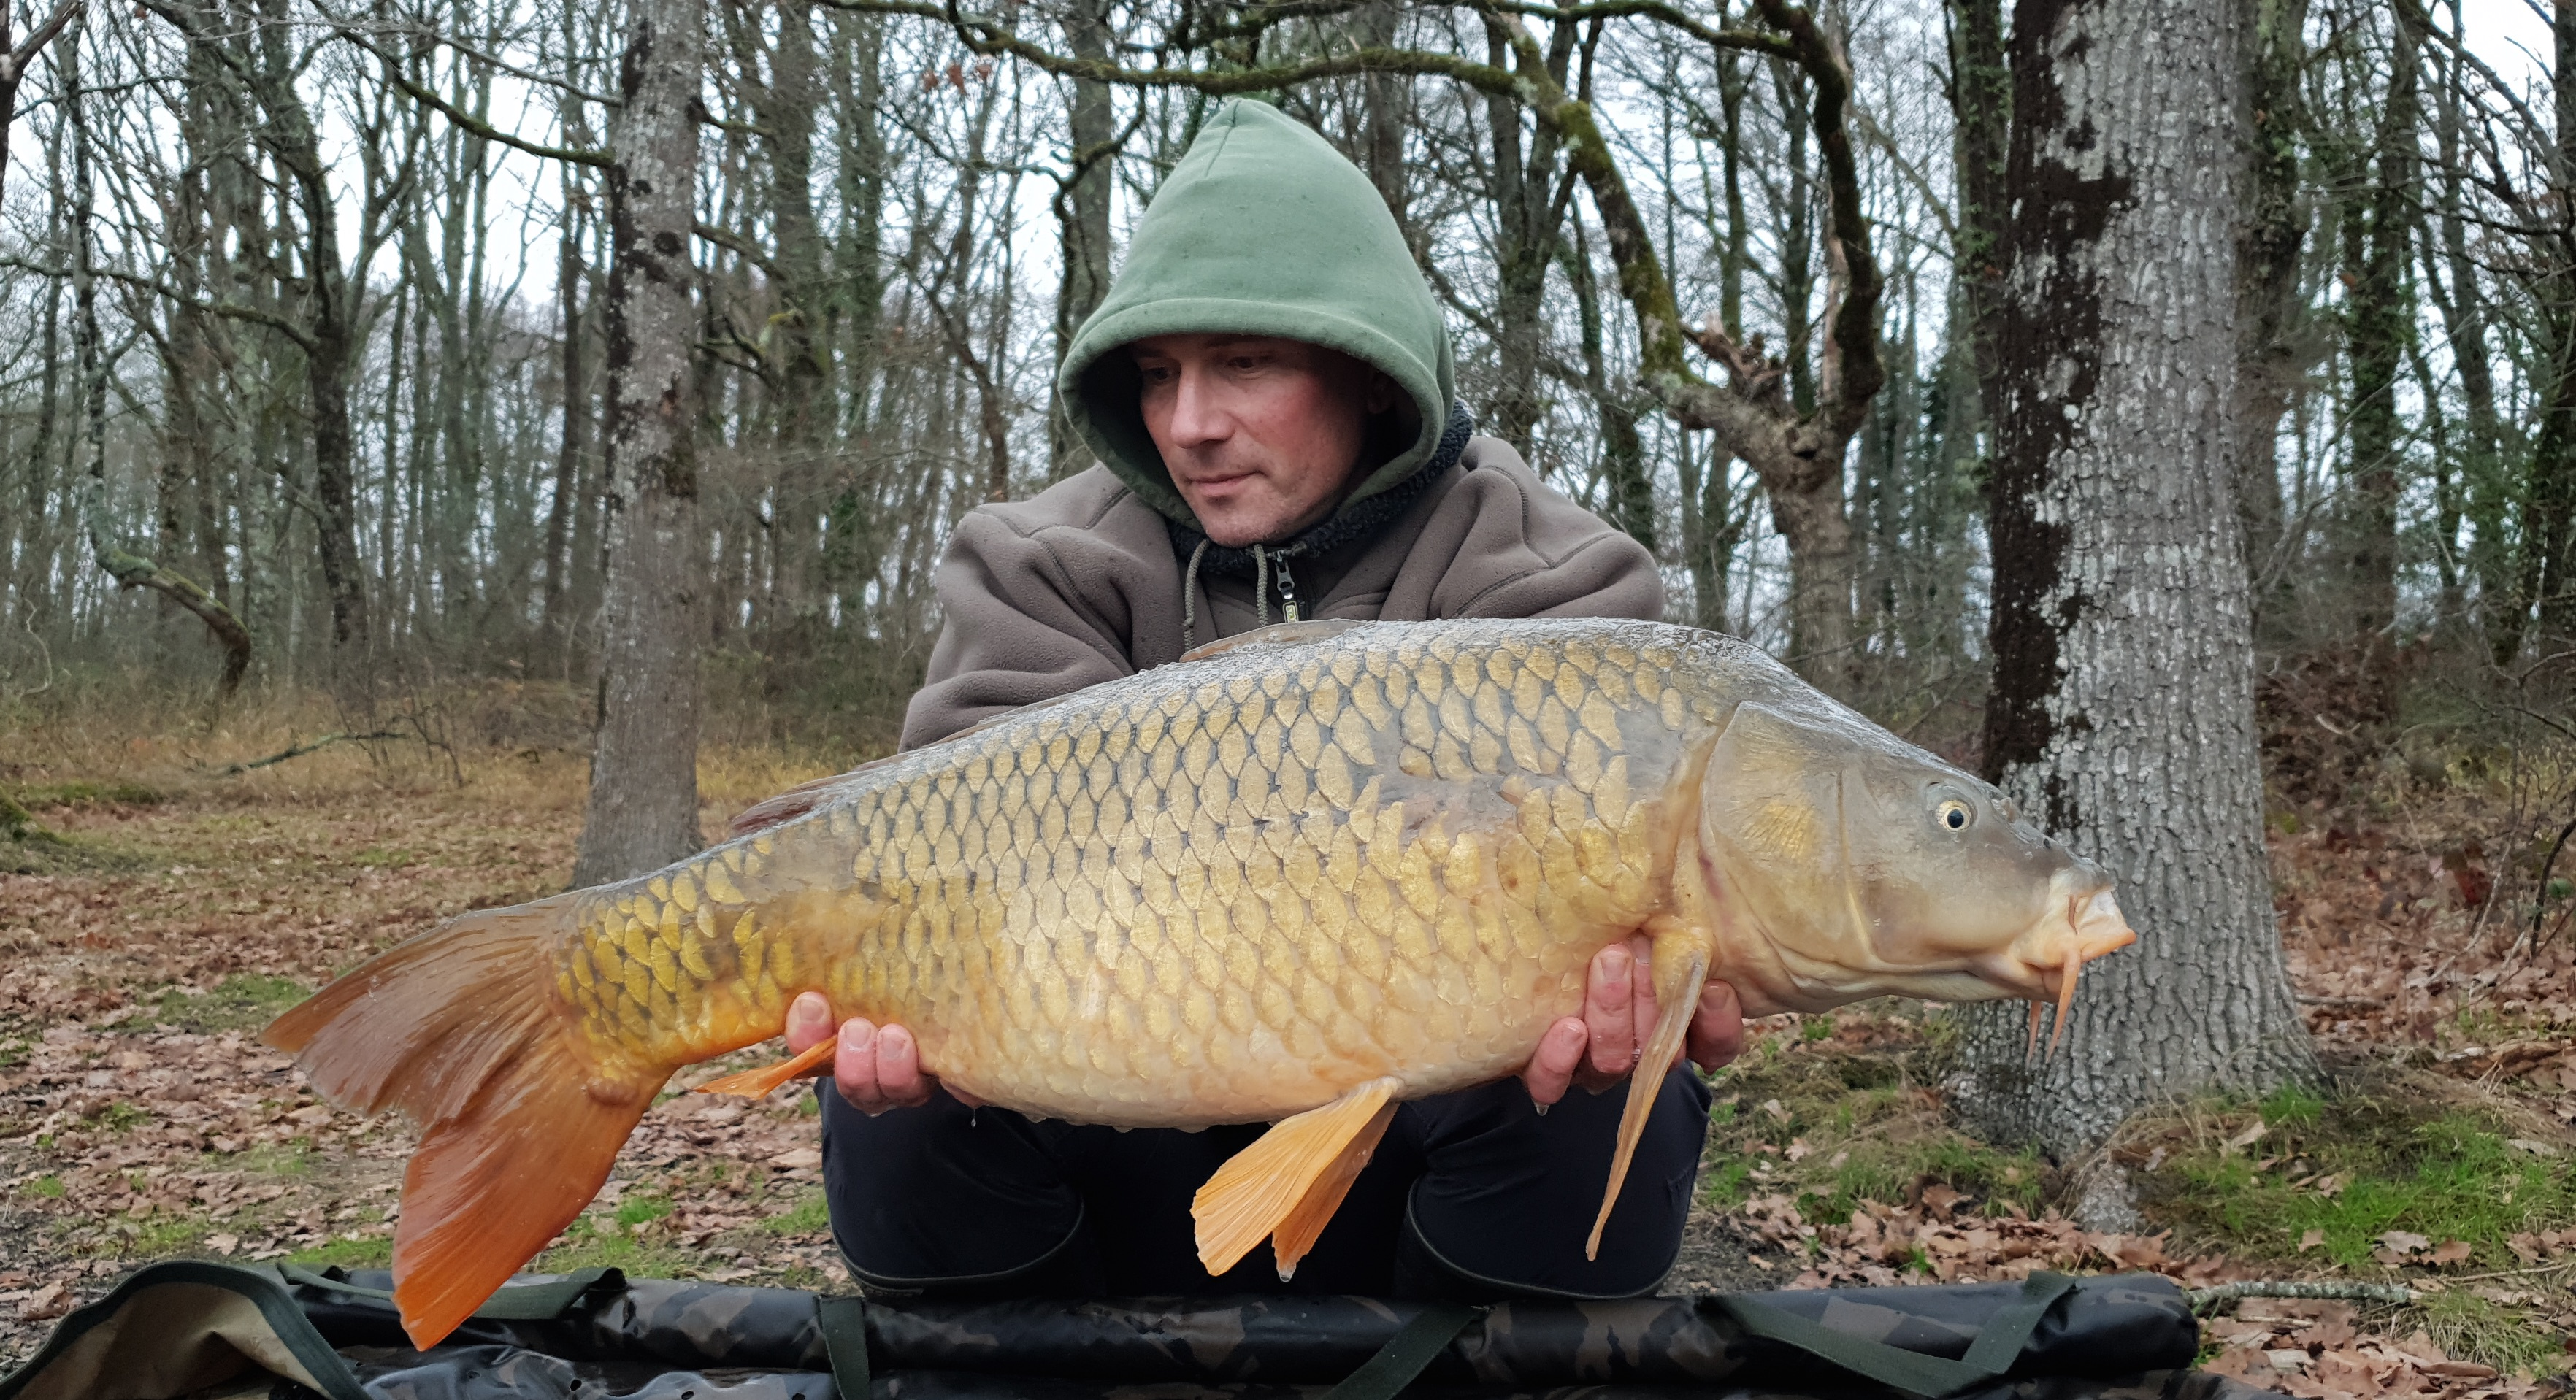 http://starbaits.com/fichiers/images/team/gallery/NICARD_Stephane/nicard_008_2019.jpg